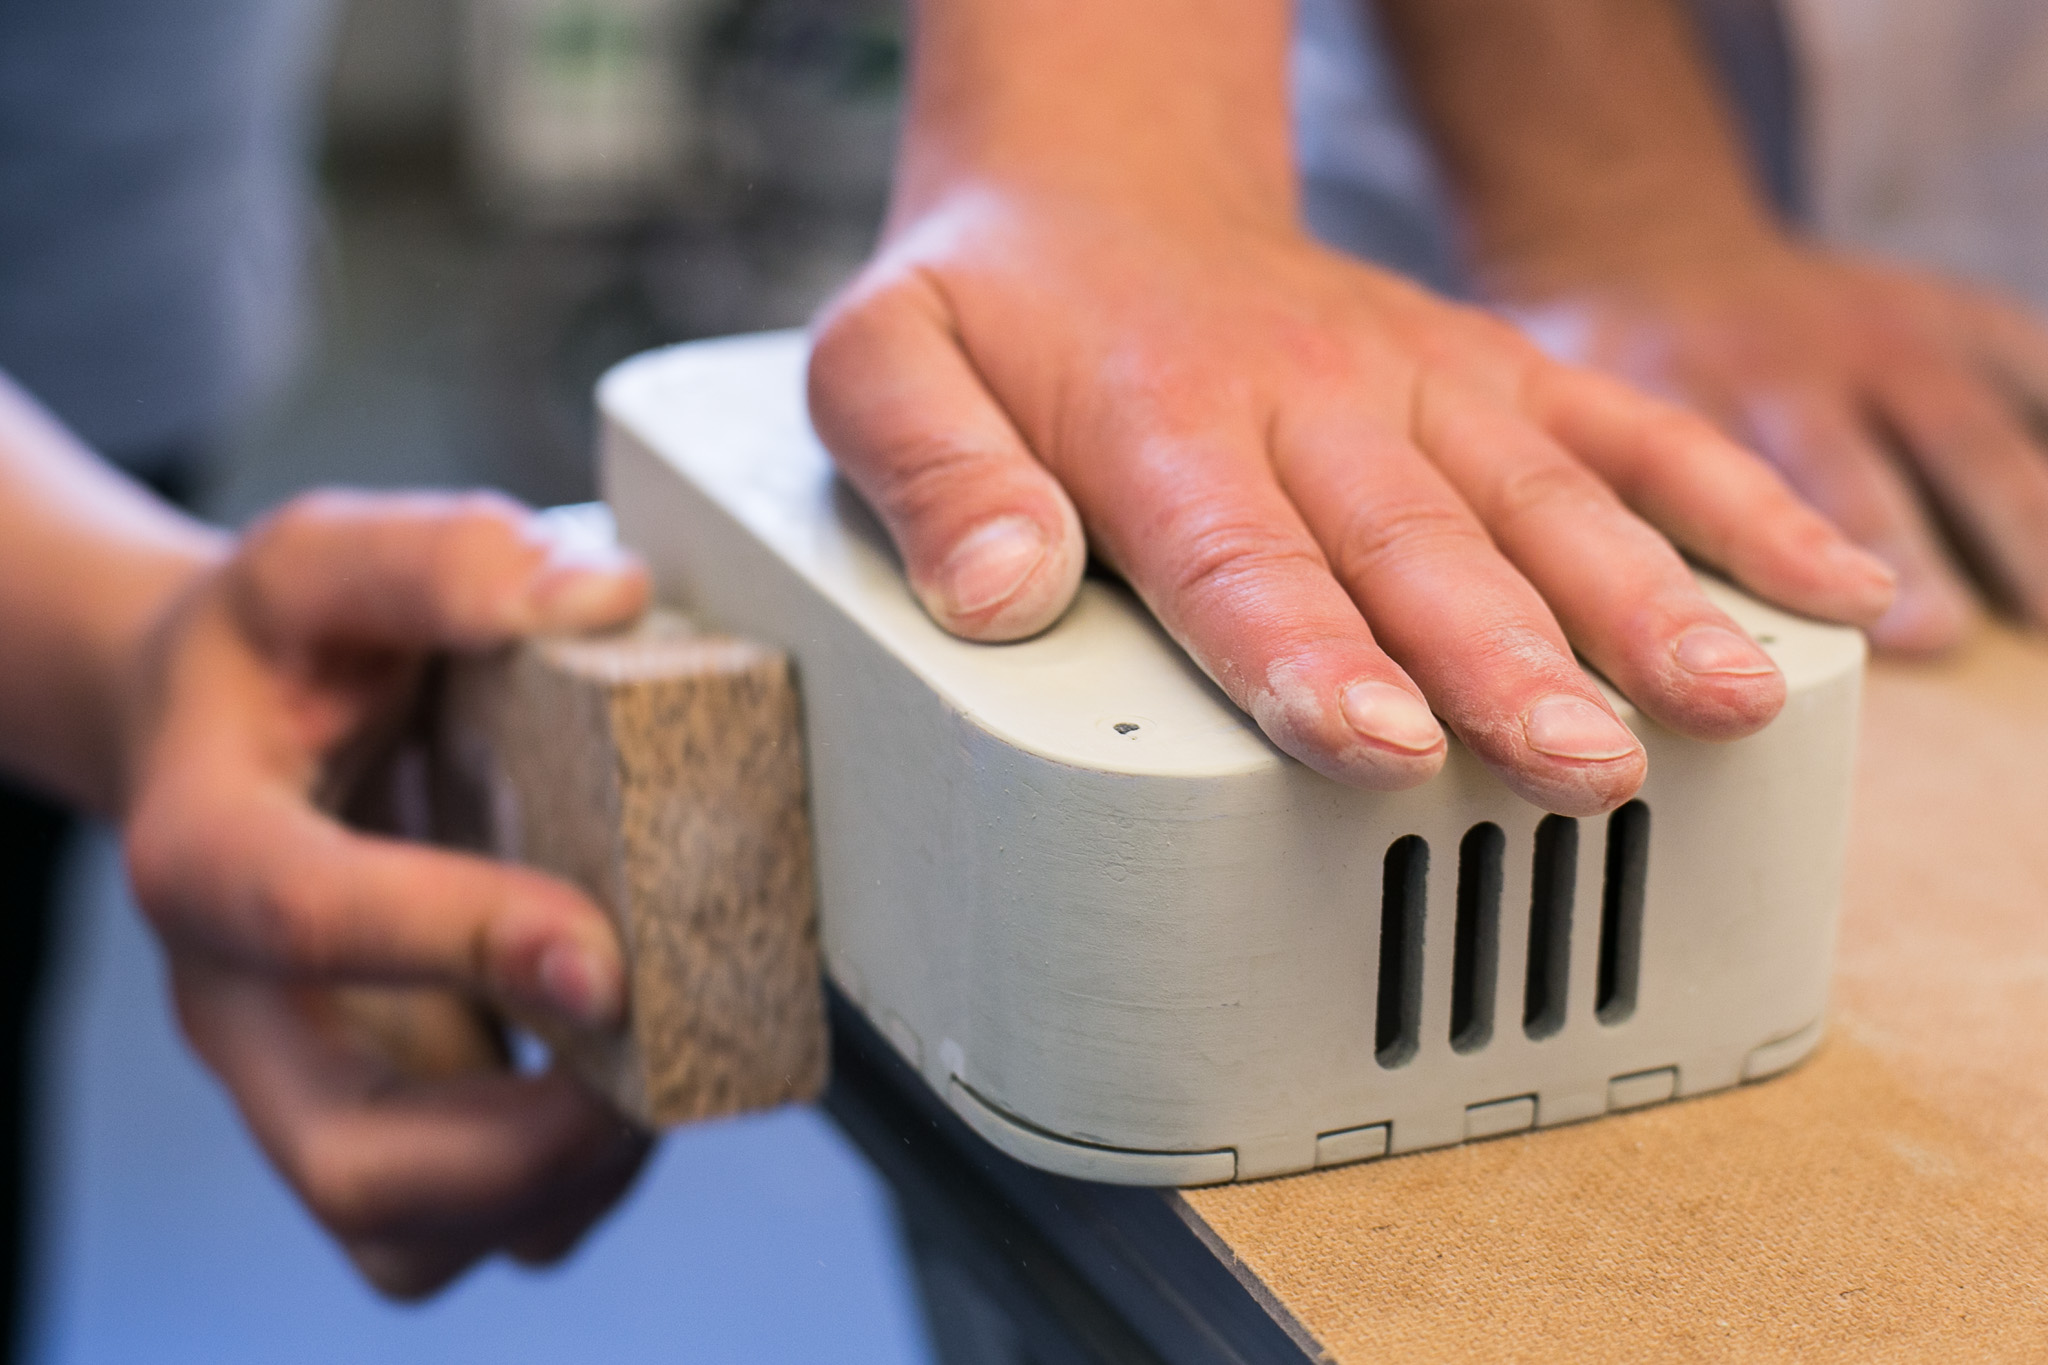 For sanding the lower box, use a cork block to fold sanding paper around. Sand in a circular movement and round off the edges.